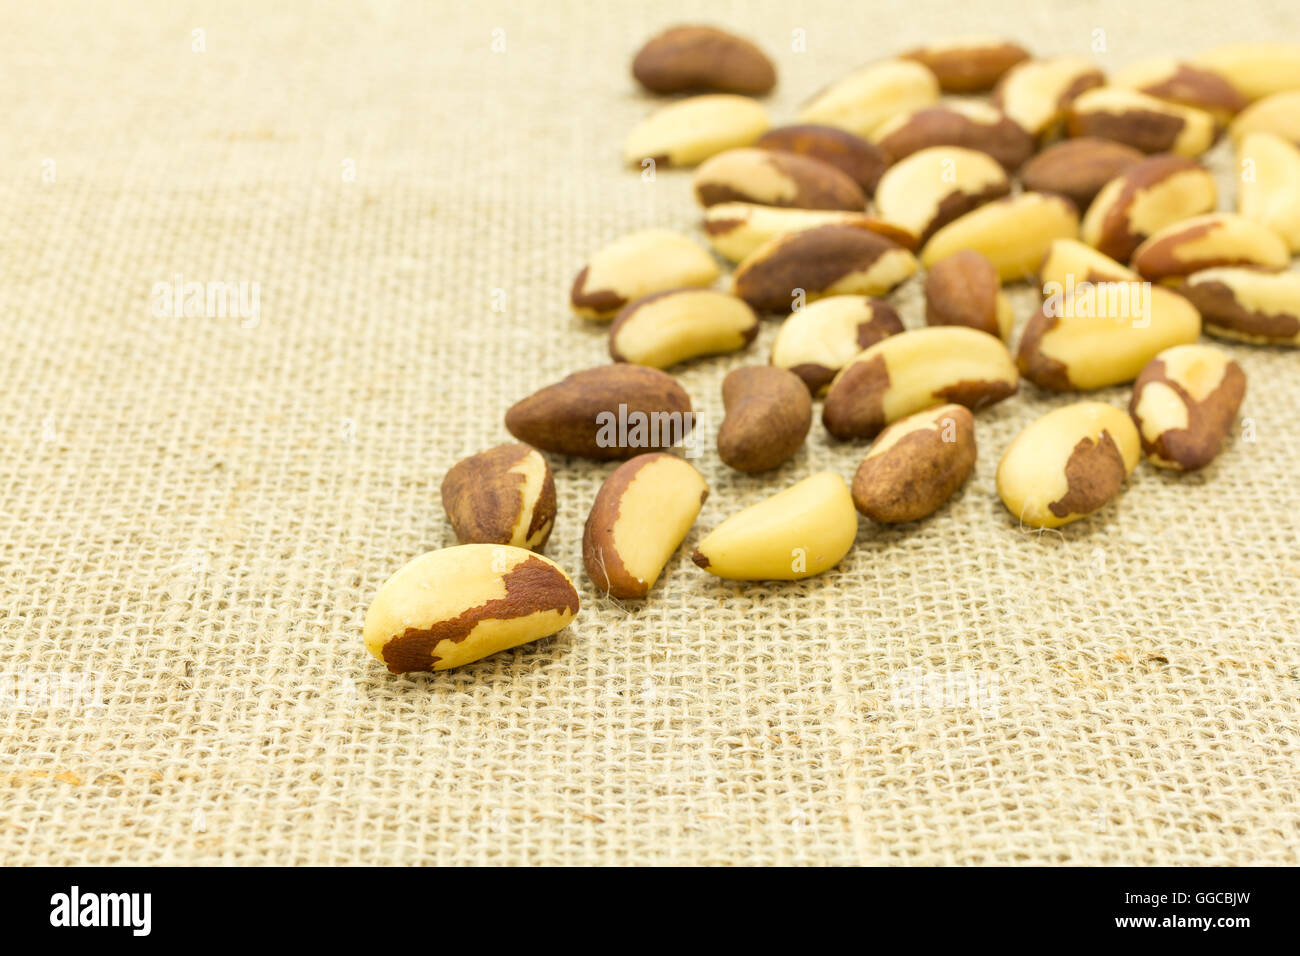 Burlap and Brazil Nut with selective focus. Space for copy. This seed is a rich source of selenium and natural antioxidant - Stock Image